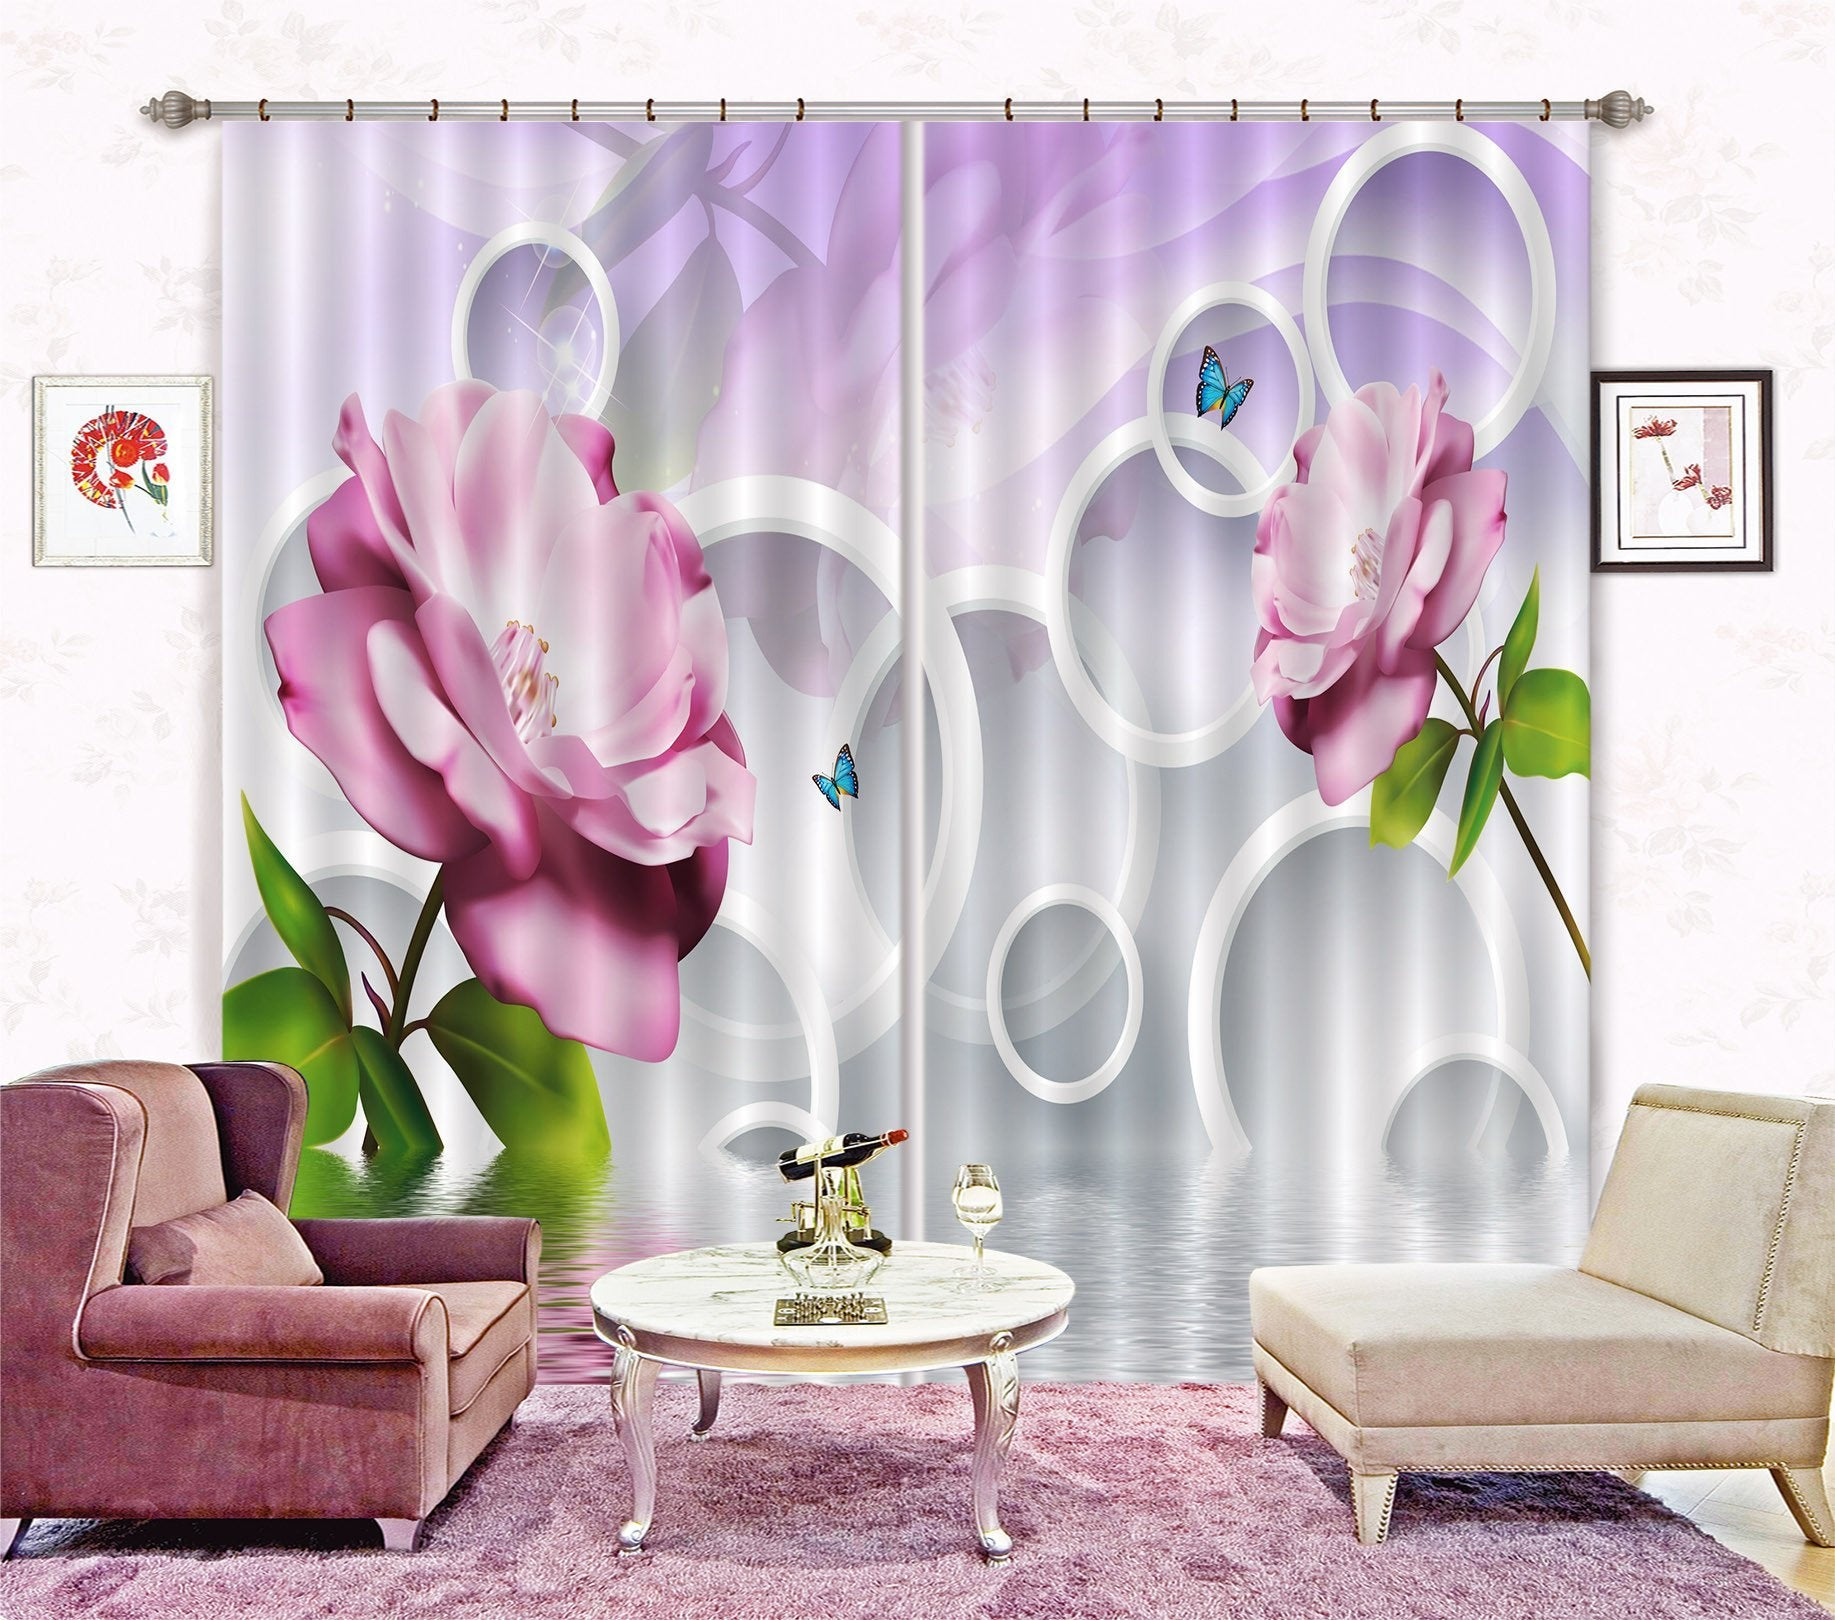 3D Flowers And Rings 298 Curtains Drapes Wallpaper AJ Wallpaper